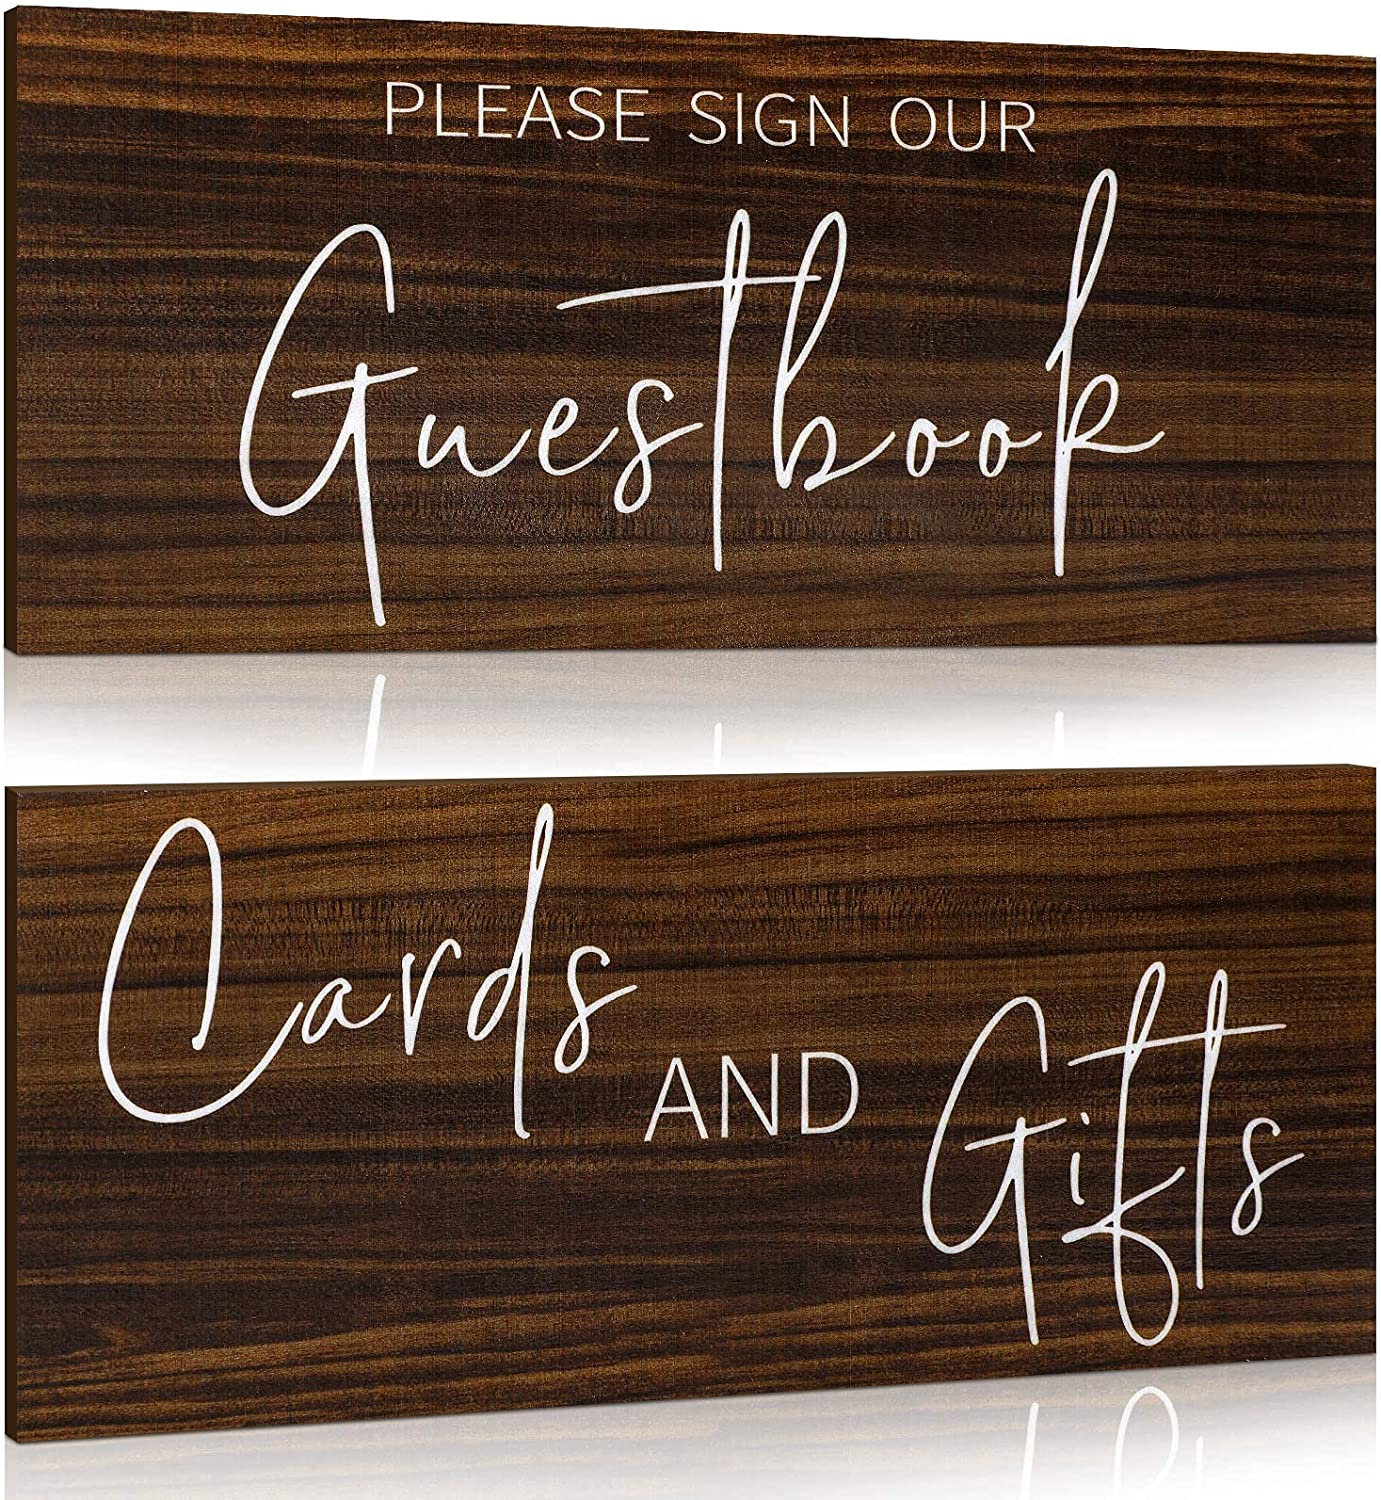 Jetec 2 Pieces Wooden Guest Book Sign Cards and Gifts Wedding Sign Rustic Farmhouse Hanging for Wedding Cabin Beach Rental House Home Decor (Brown)